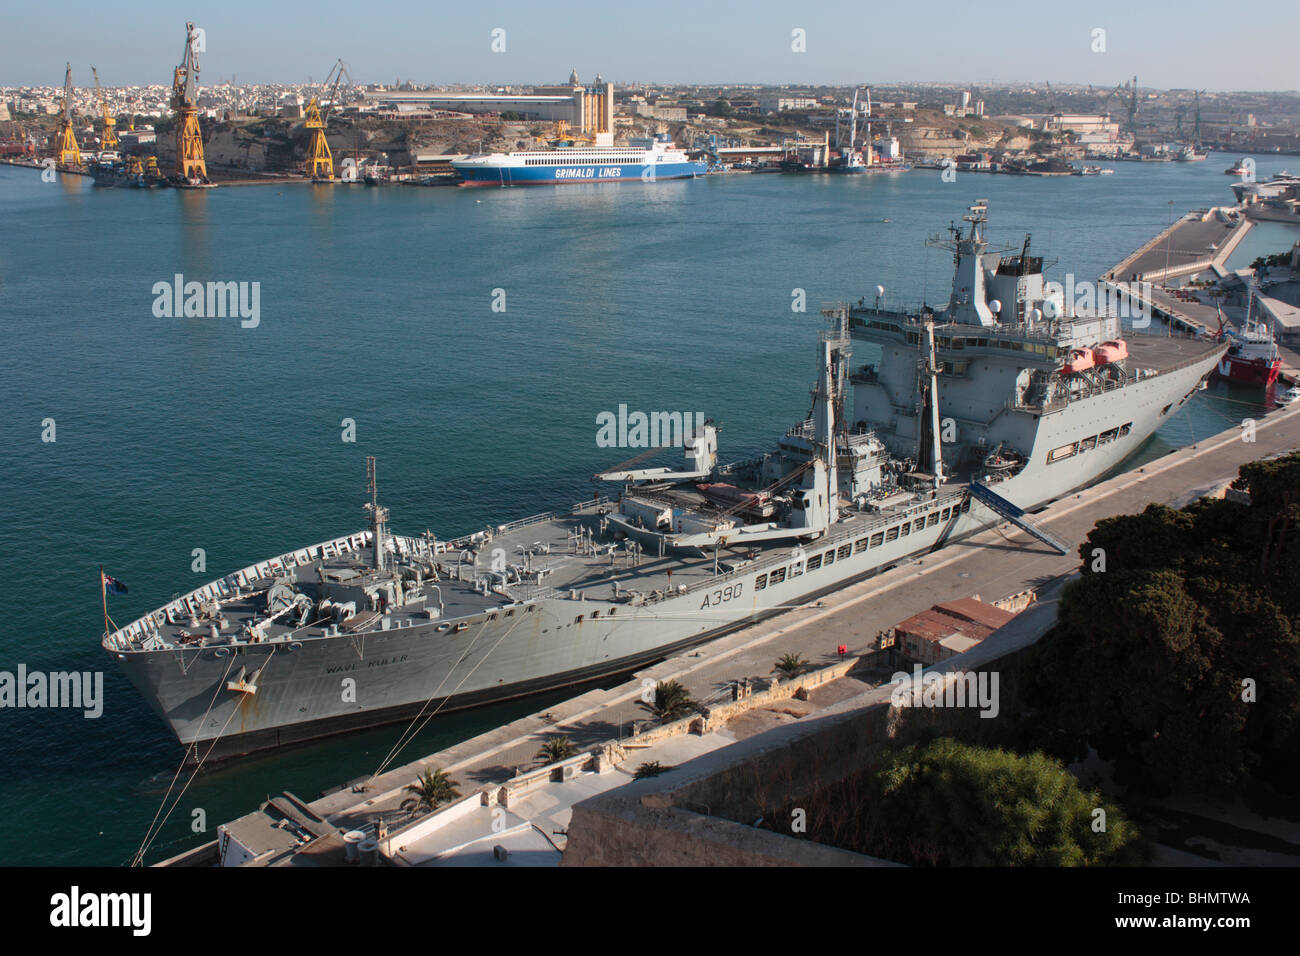 The Royal Fleet Auxiliary naval resupply ship Wave Ruler in Malta's Grand Harbour - Stock Image